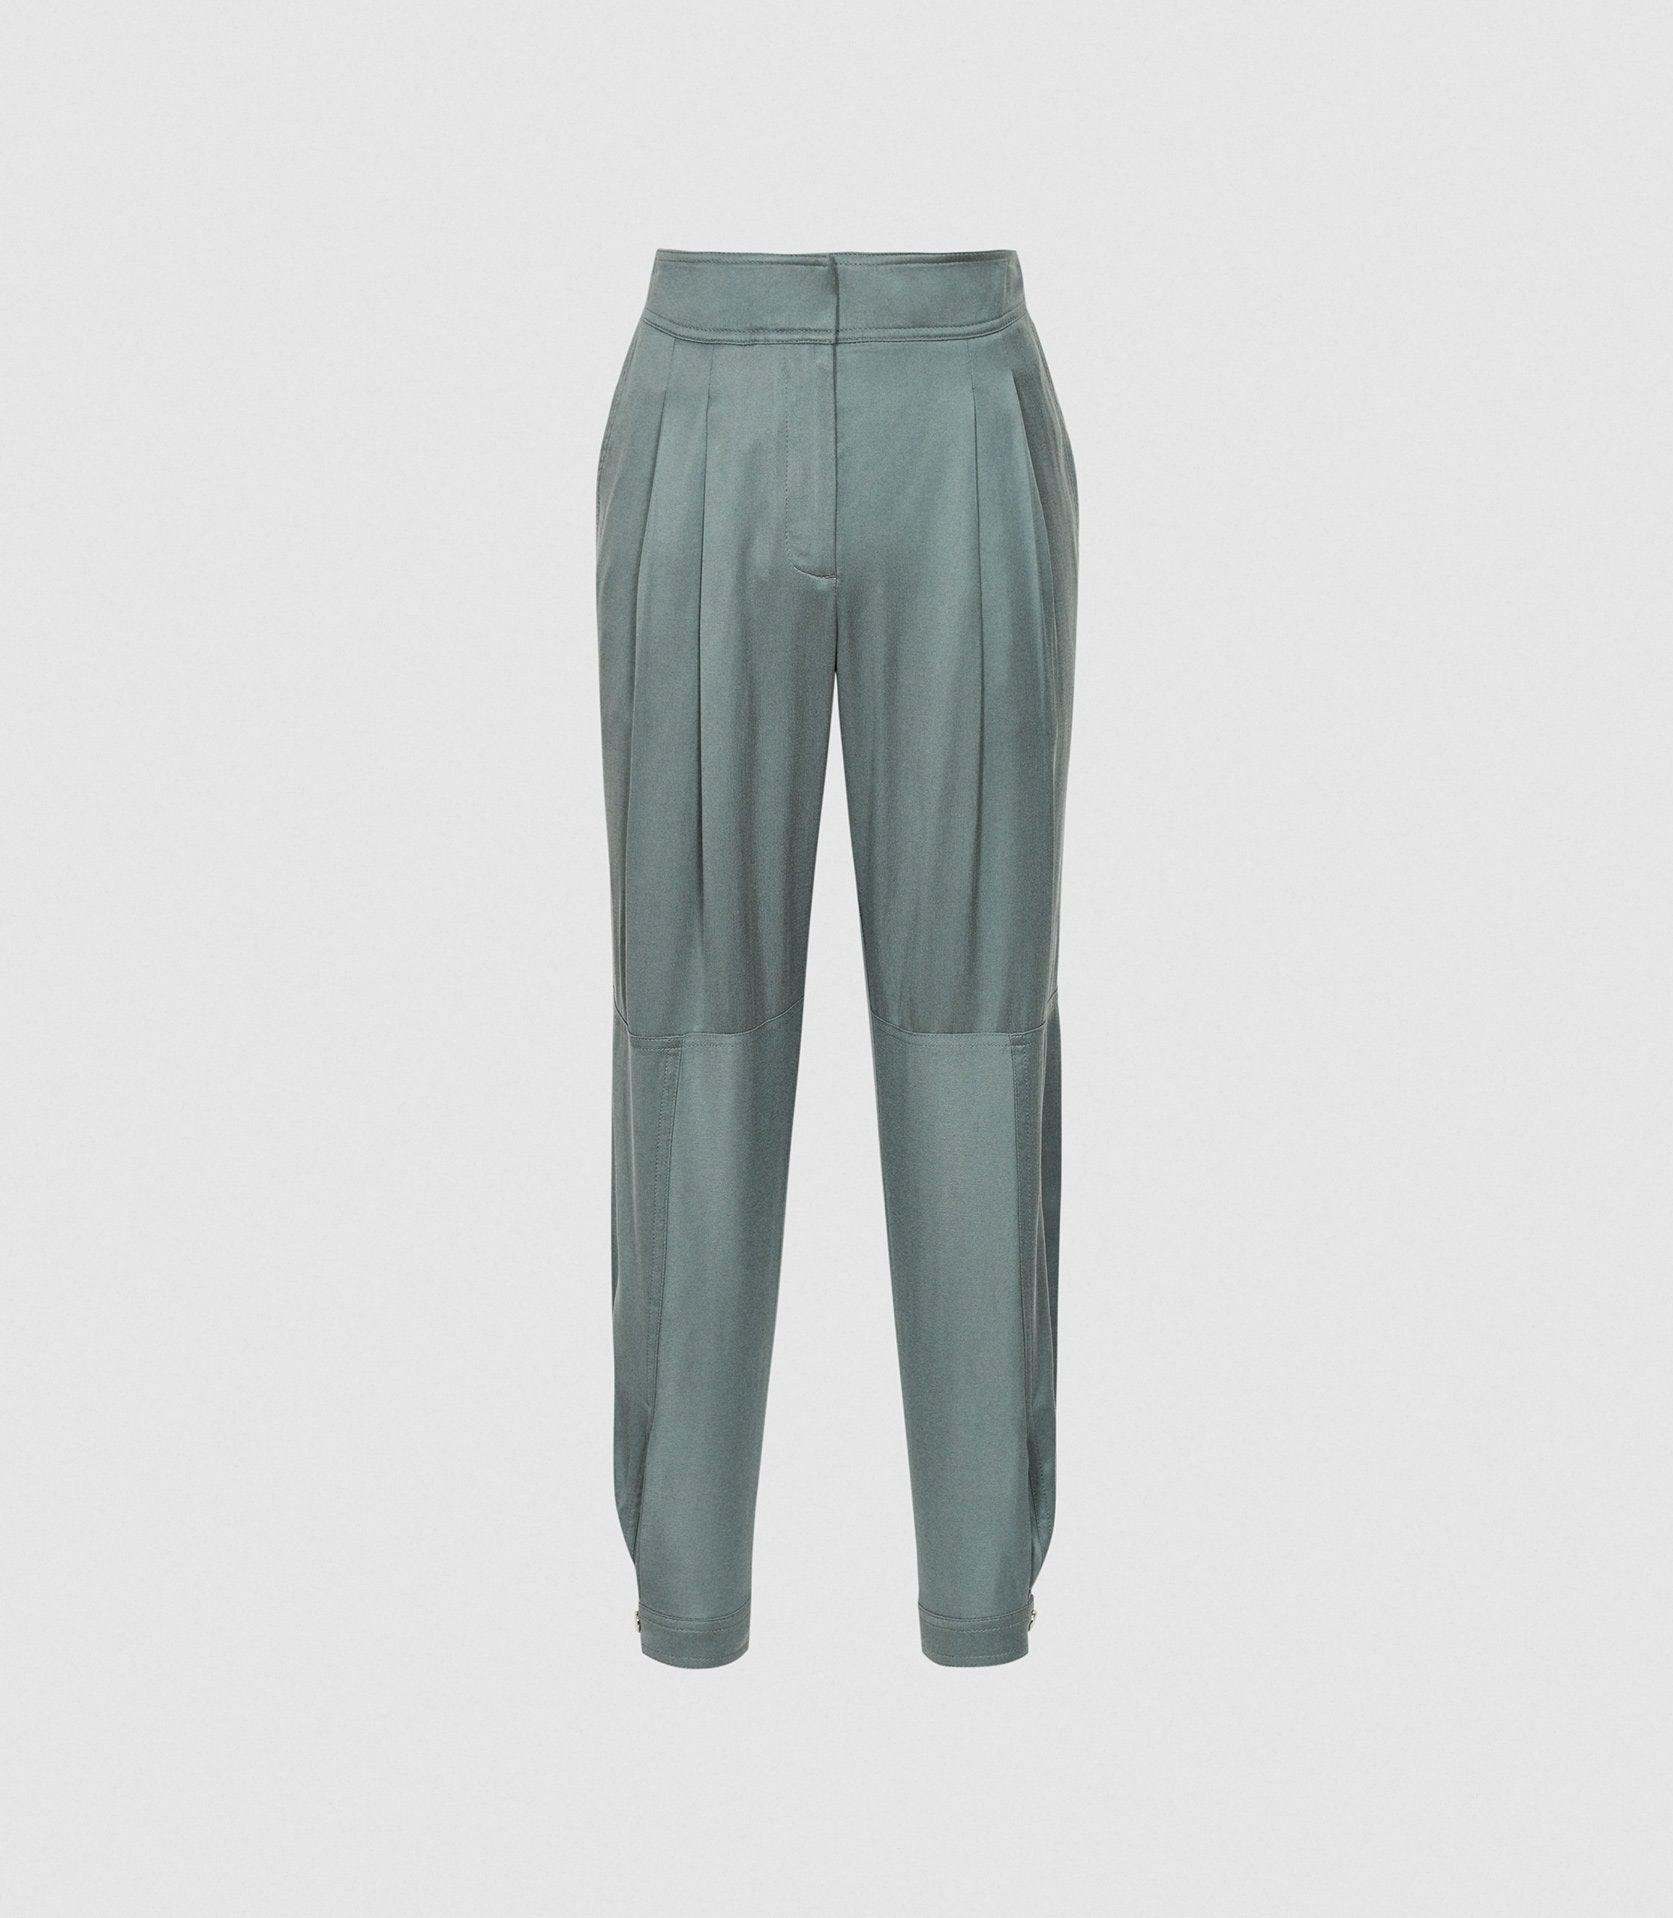 MARLOW - PLEAT FRONT TAPERED PANTS 4